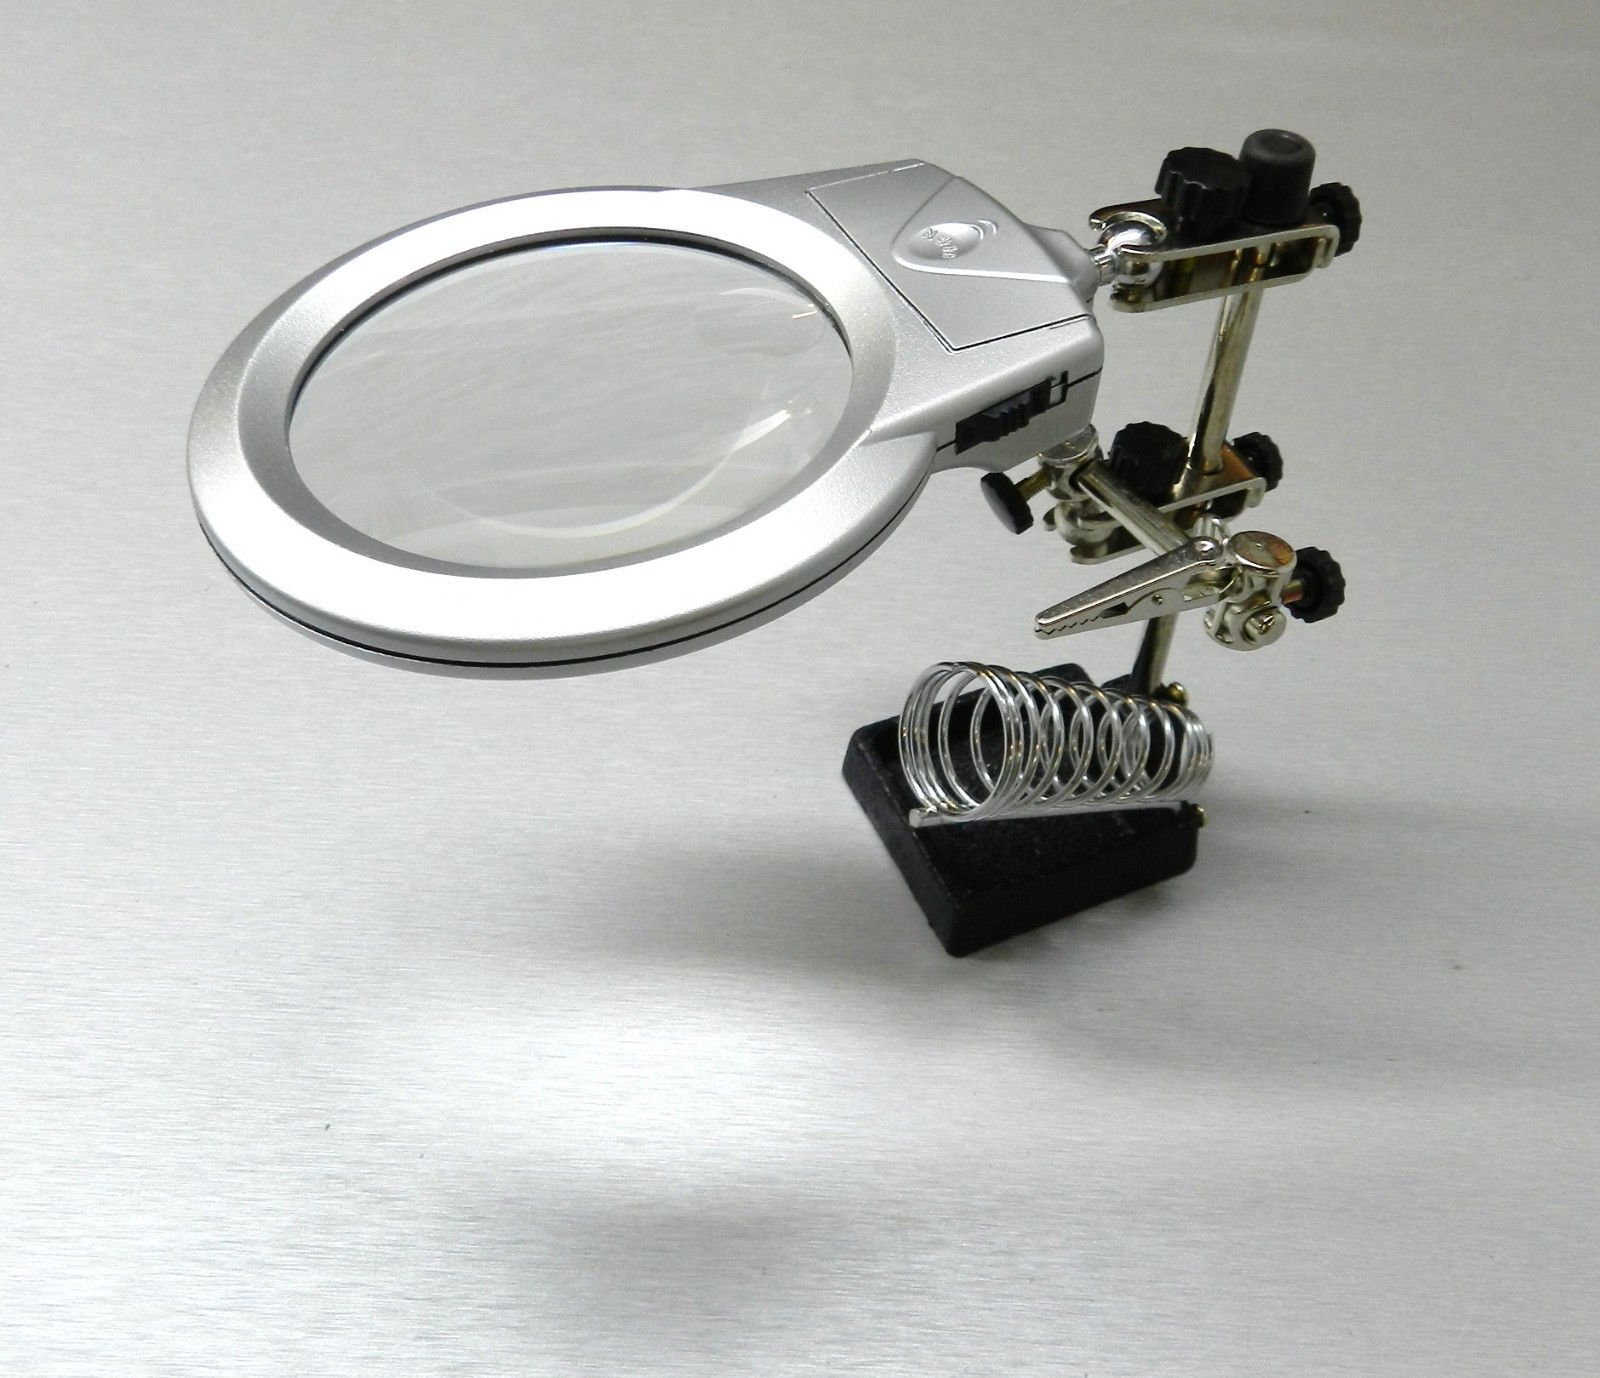 HELPING HAND MAGNIFIER with LED LIGHTS THIRD HAND SOLDERING STAND DUAL POWER NEW .sell#(jetstools~hee16200935430109